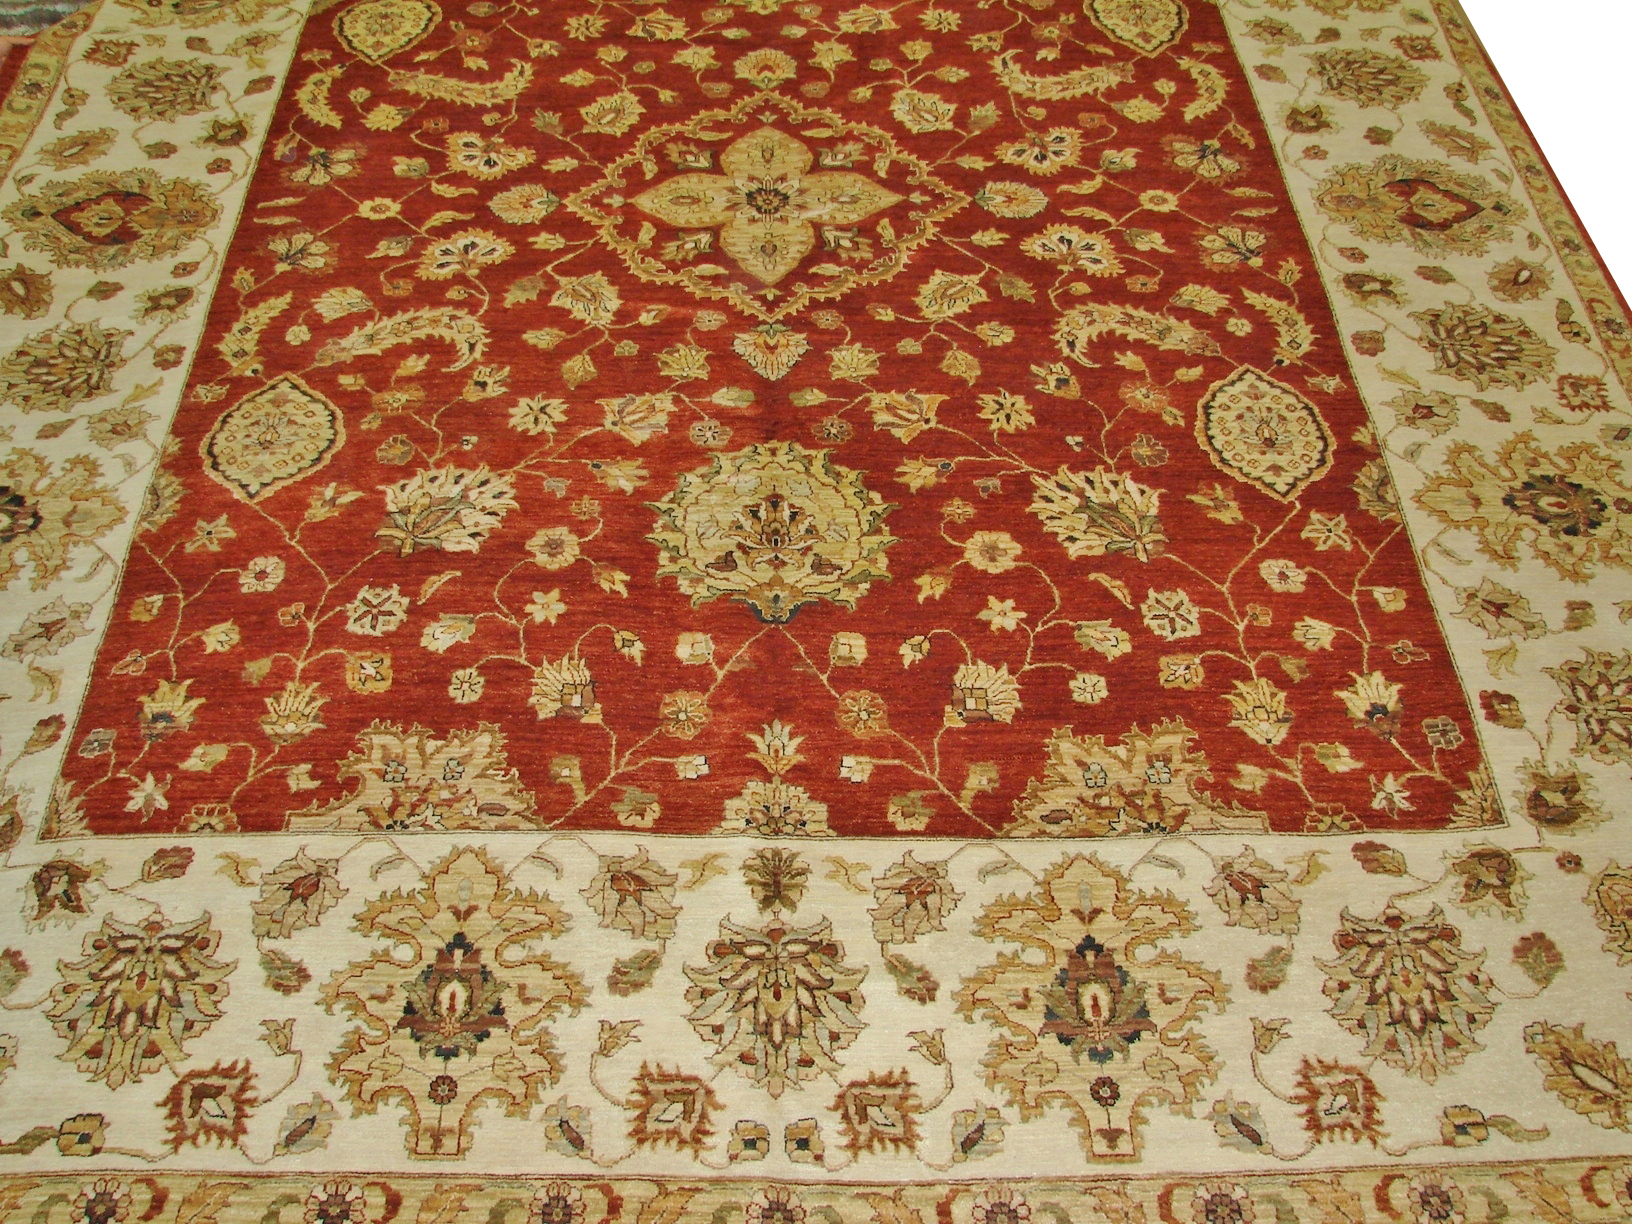 OVERSIZE Traditional Hand Knotted Wool Area Rug - MR14636